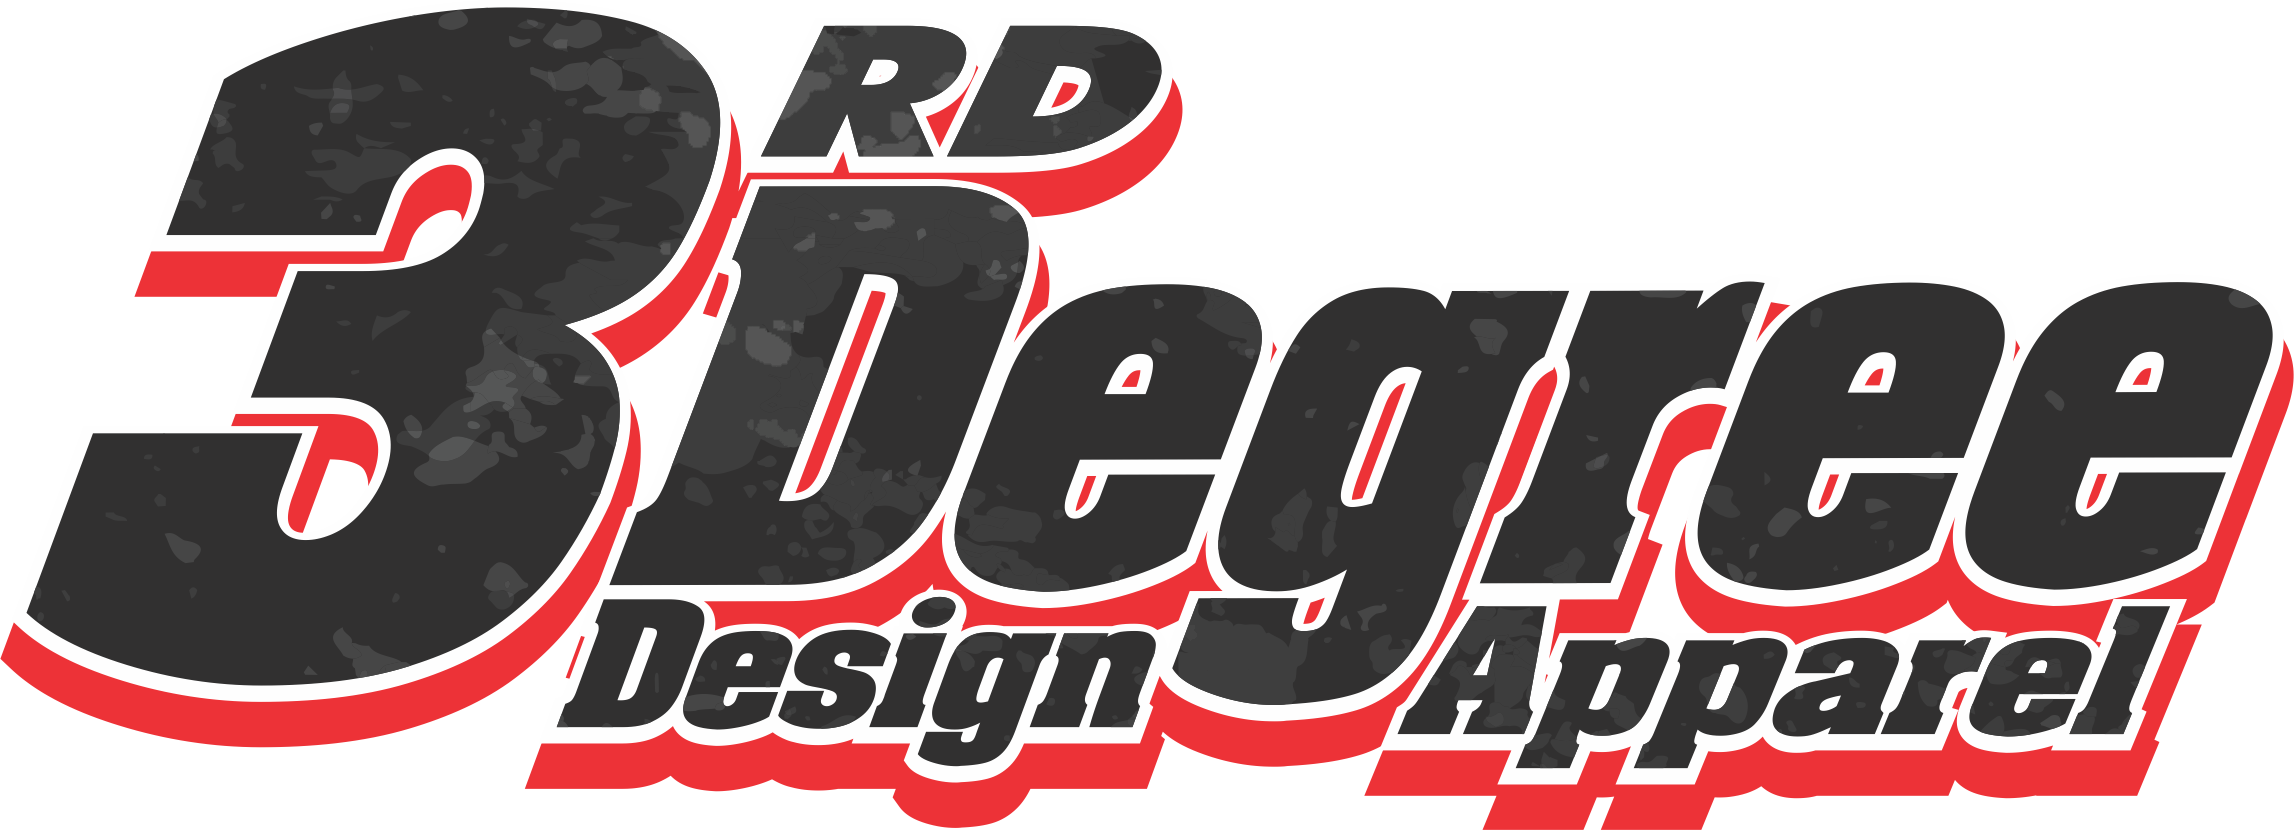 3rd Degree Designs